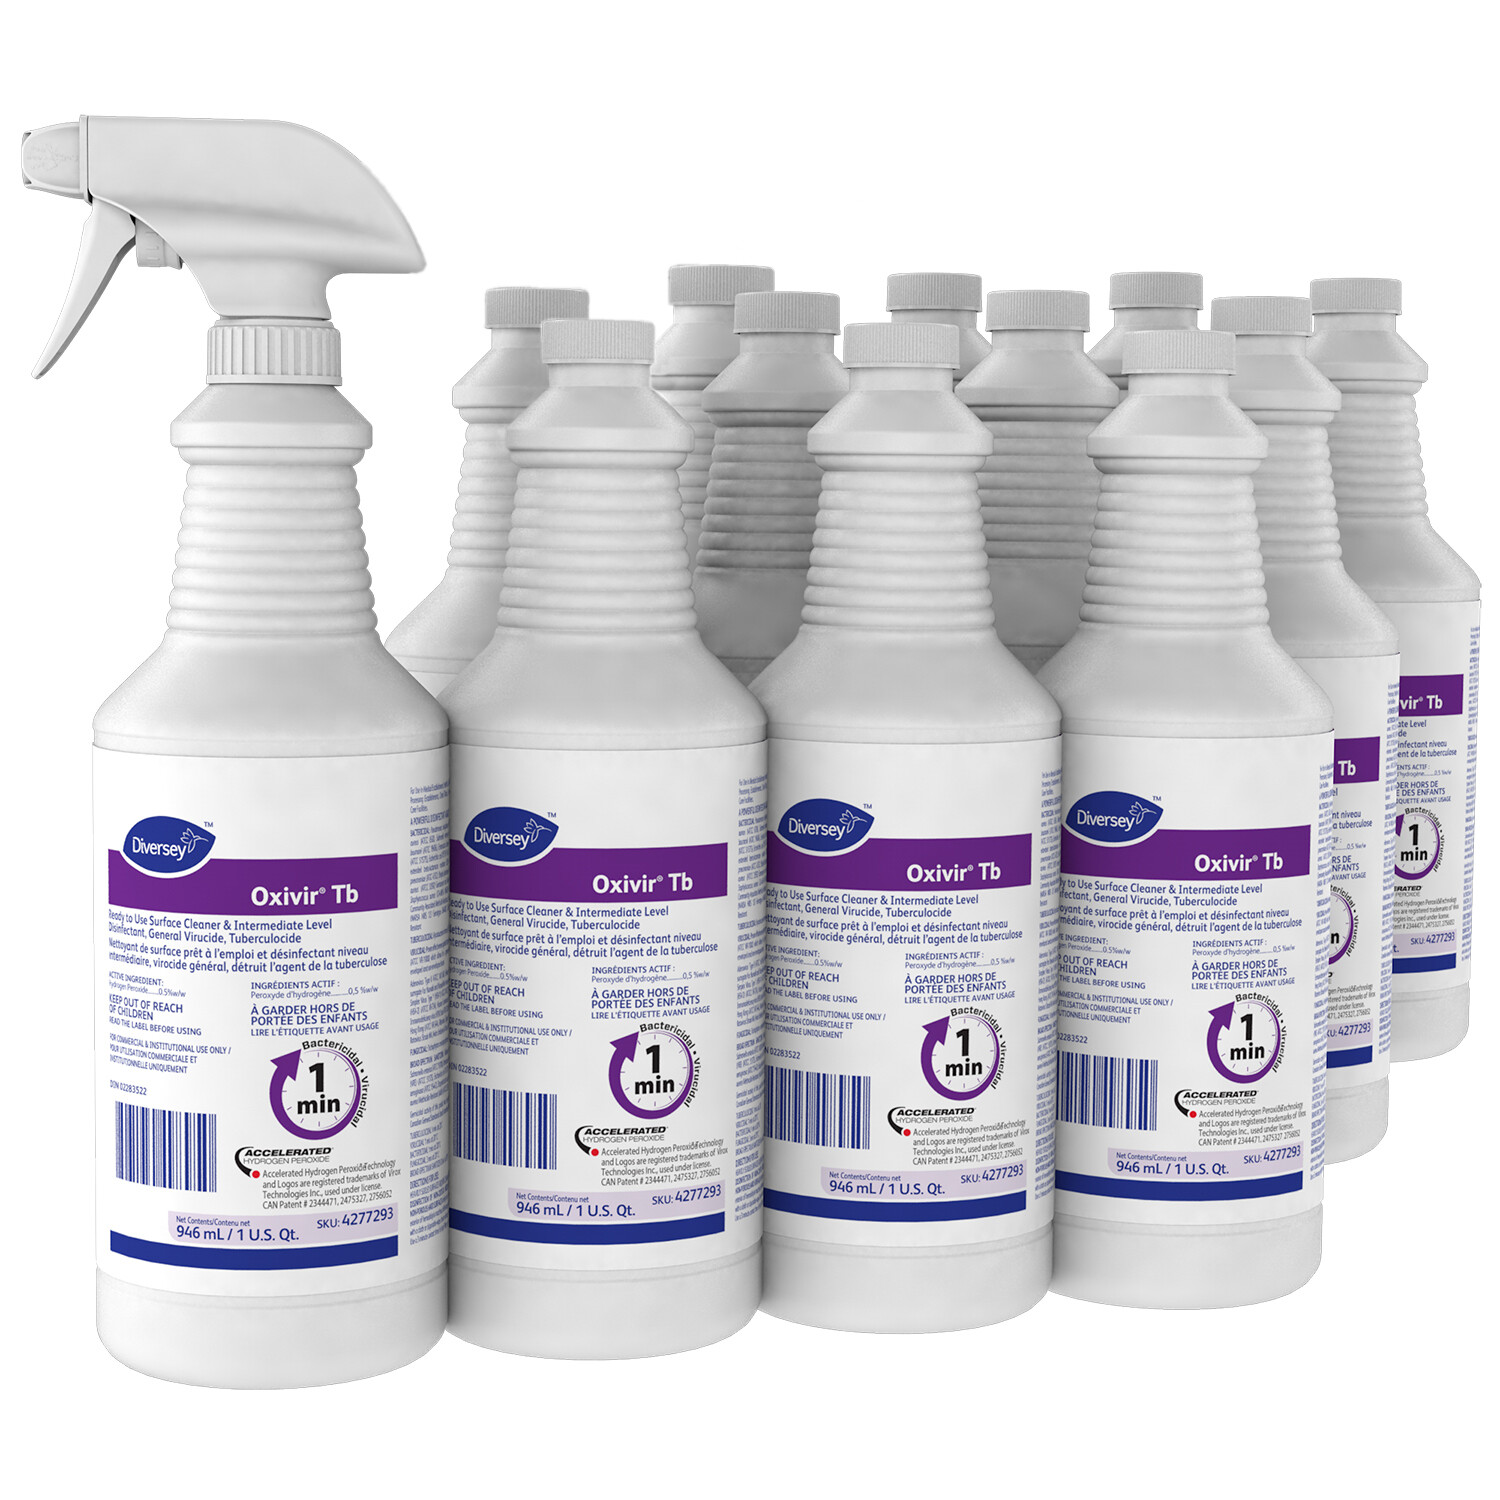 Diversey Oxivir TB Ready-To-Use Disinfectant Cleaner, 946 mL, 12/Case